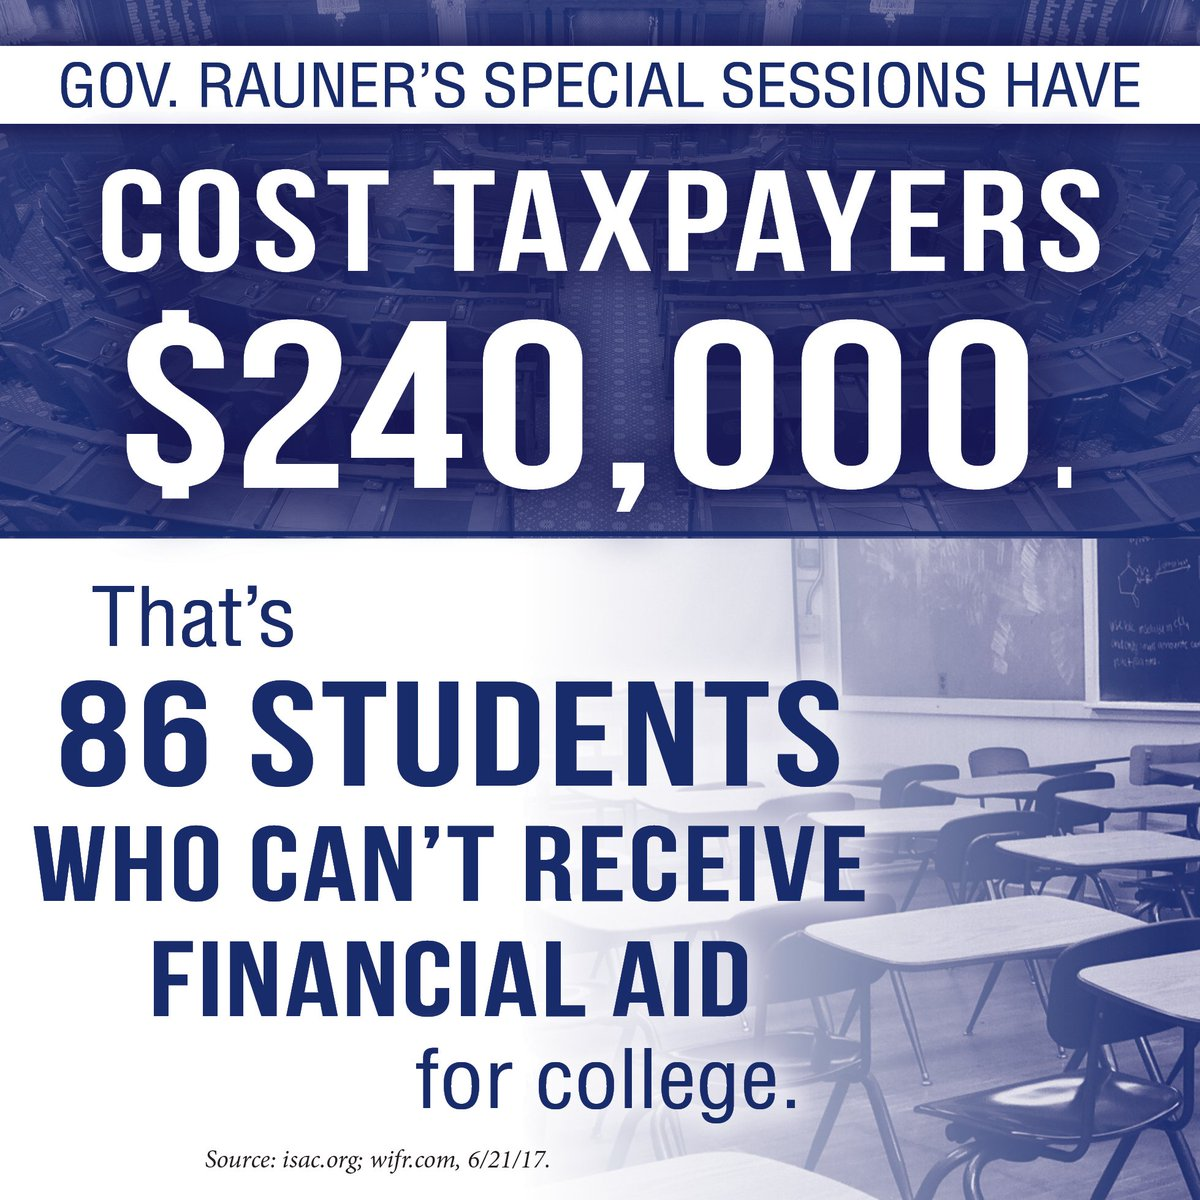 test Twitter Media - While Gov. Rauner continues refusing to negotiate an #ILBudget, his special sessions are costing taxpayers $48k/day. #twill https://t.co/7vwmdYNrE3